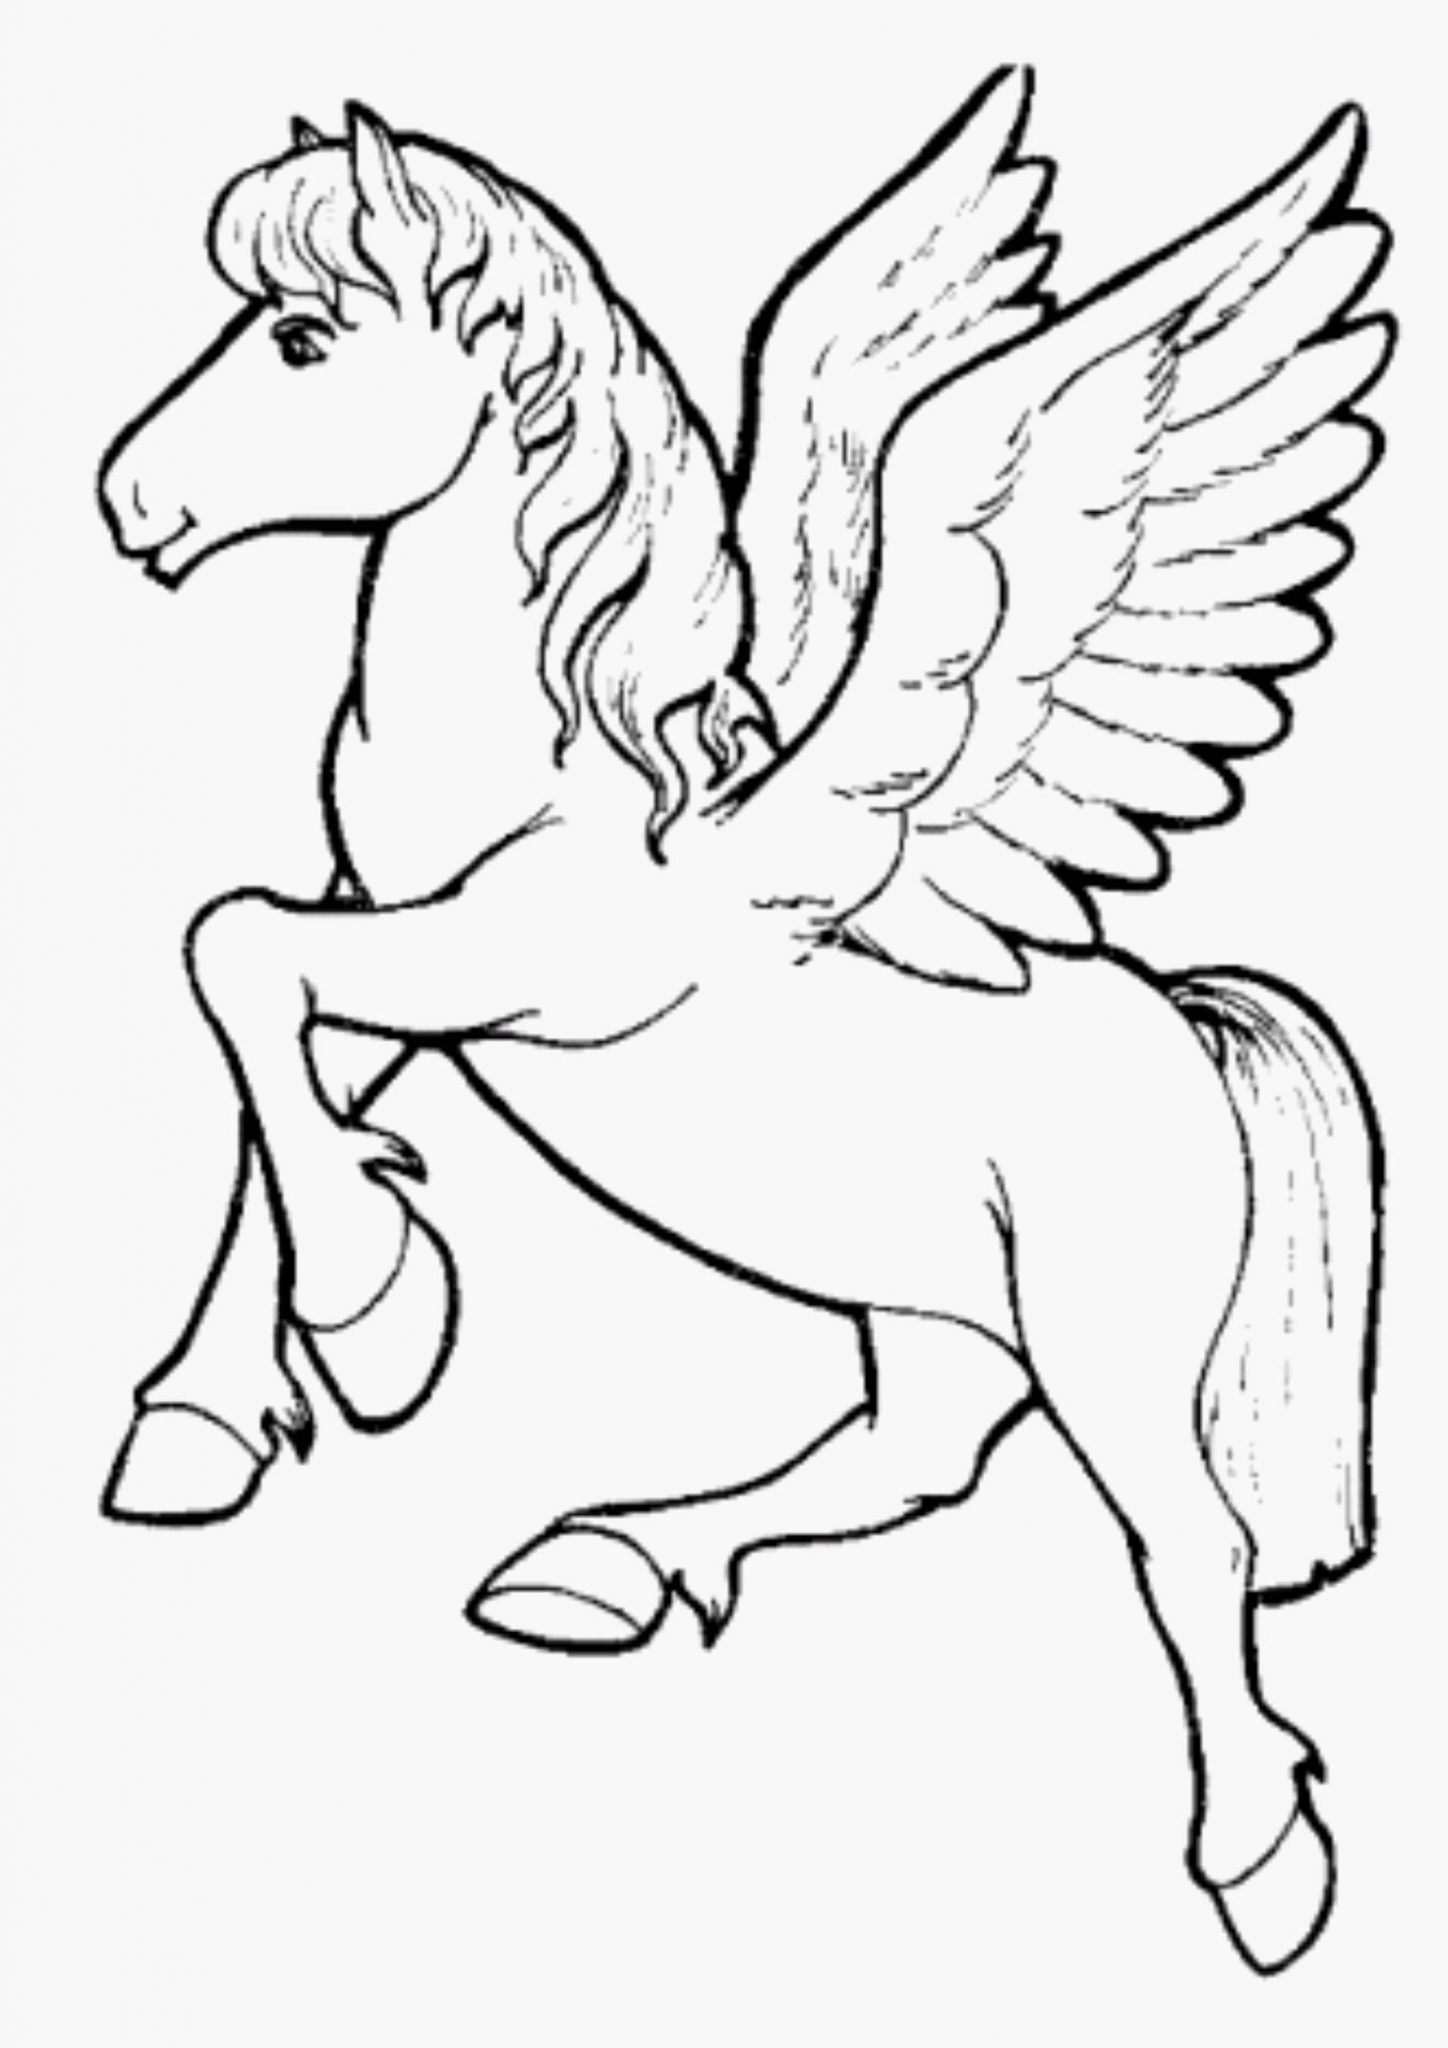 unicorn printables animals archives 101 coloring printables unicorn